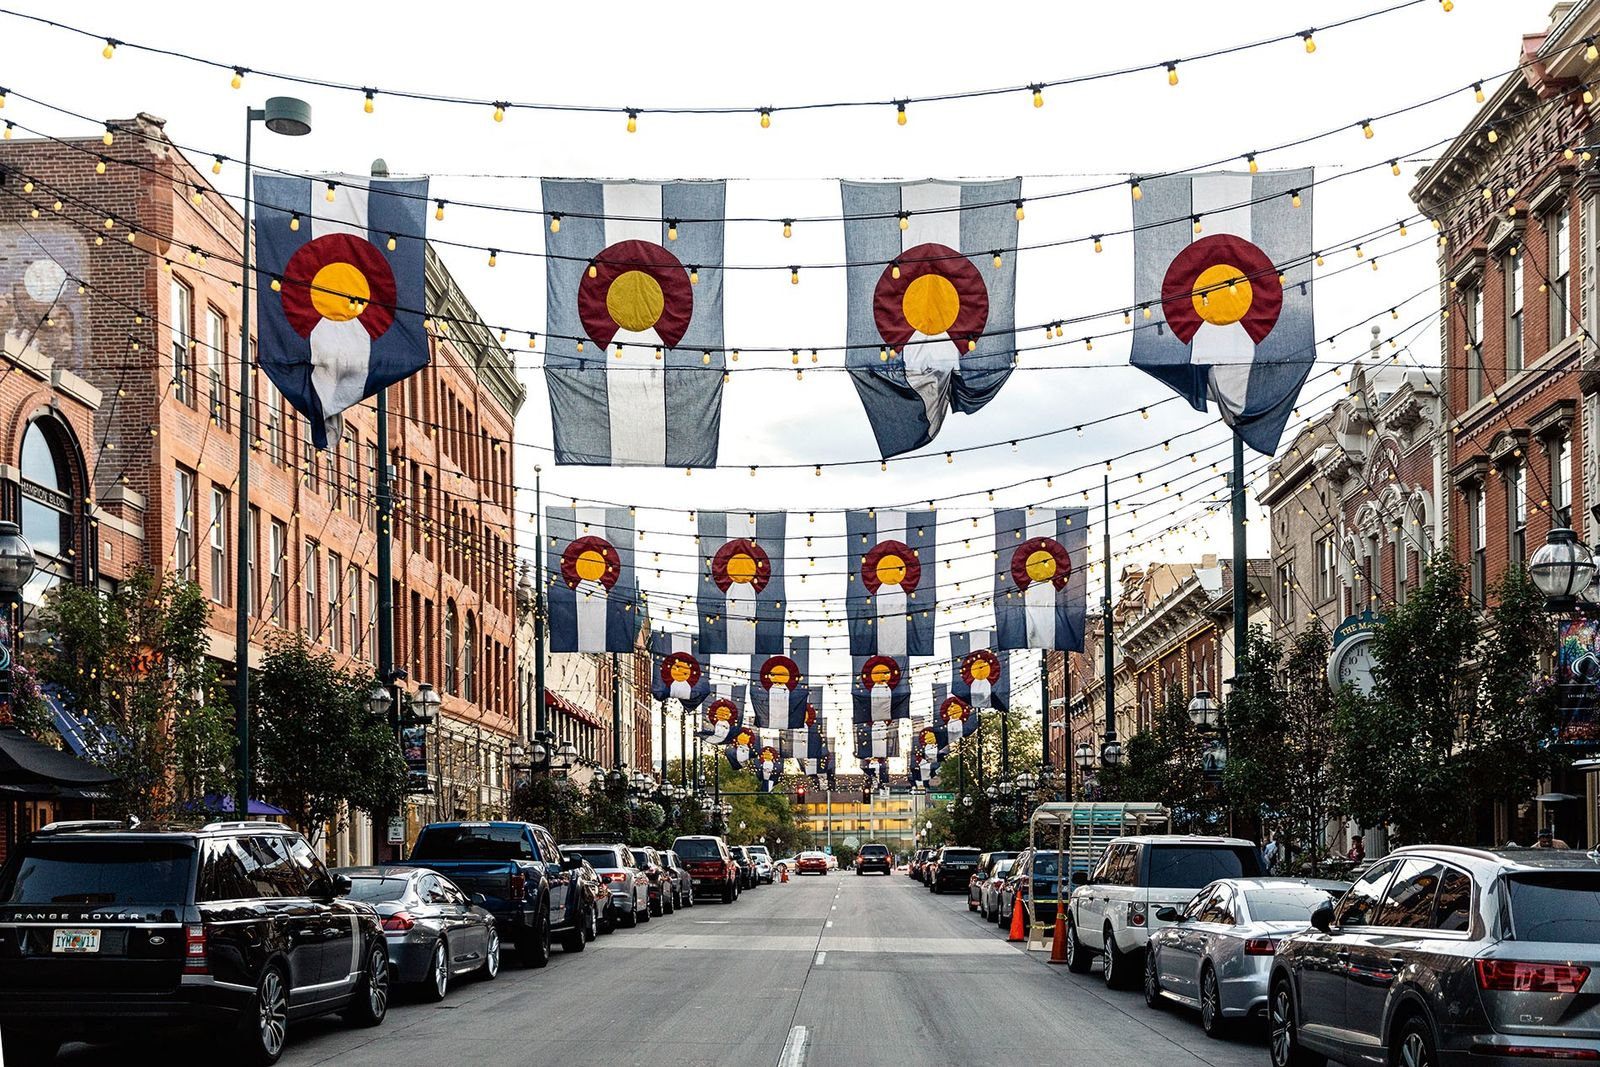 Flags fly over Denver's historic Larimer Square.